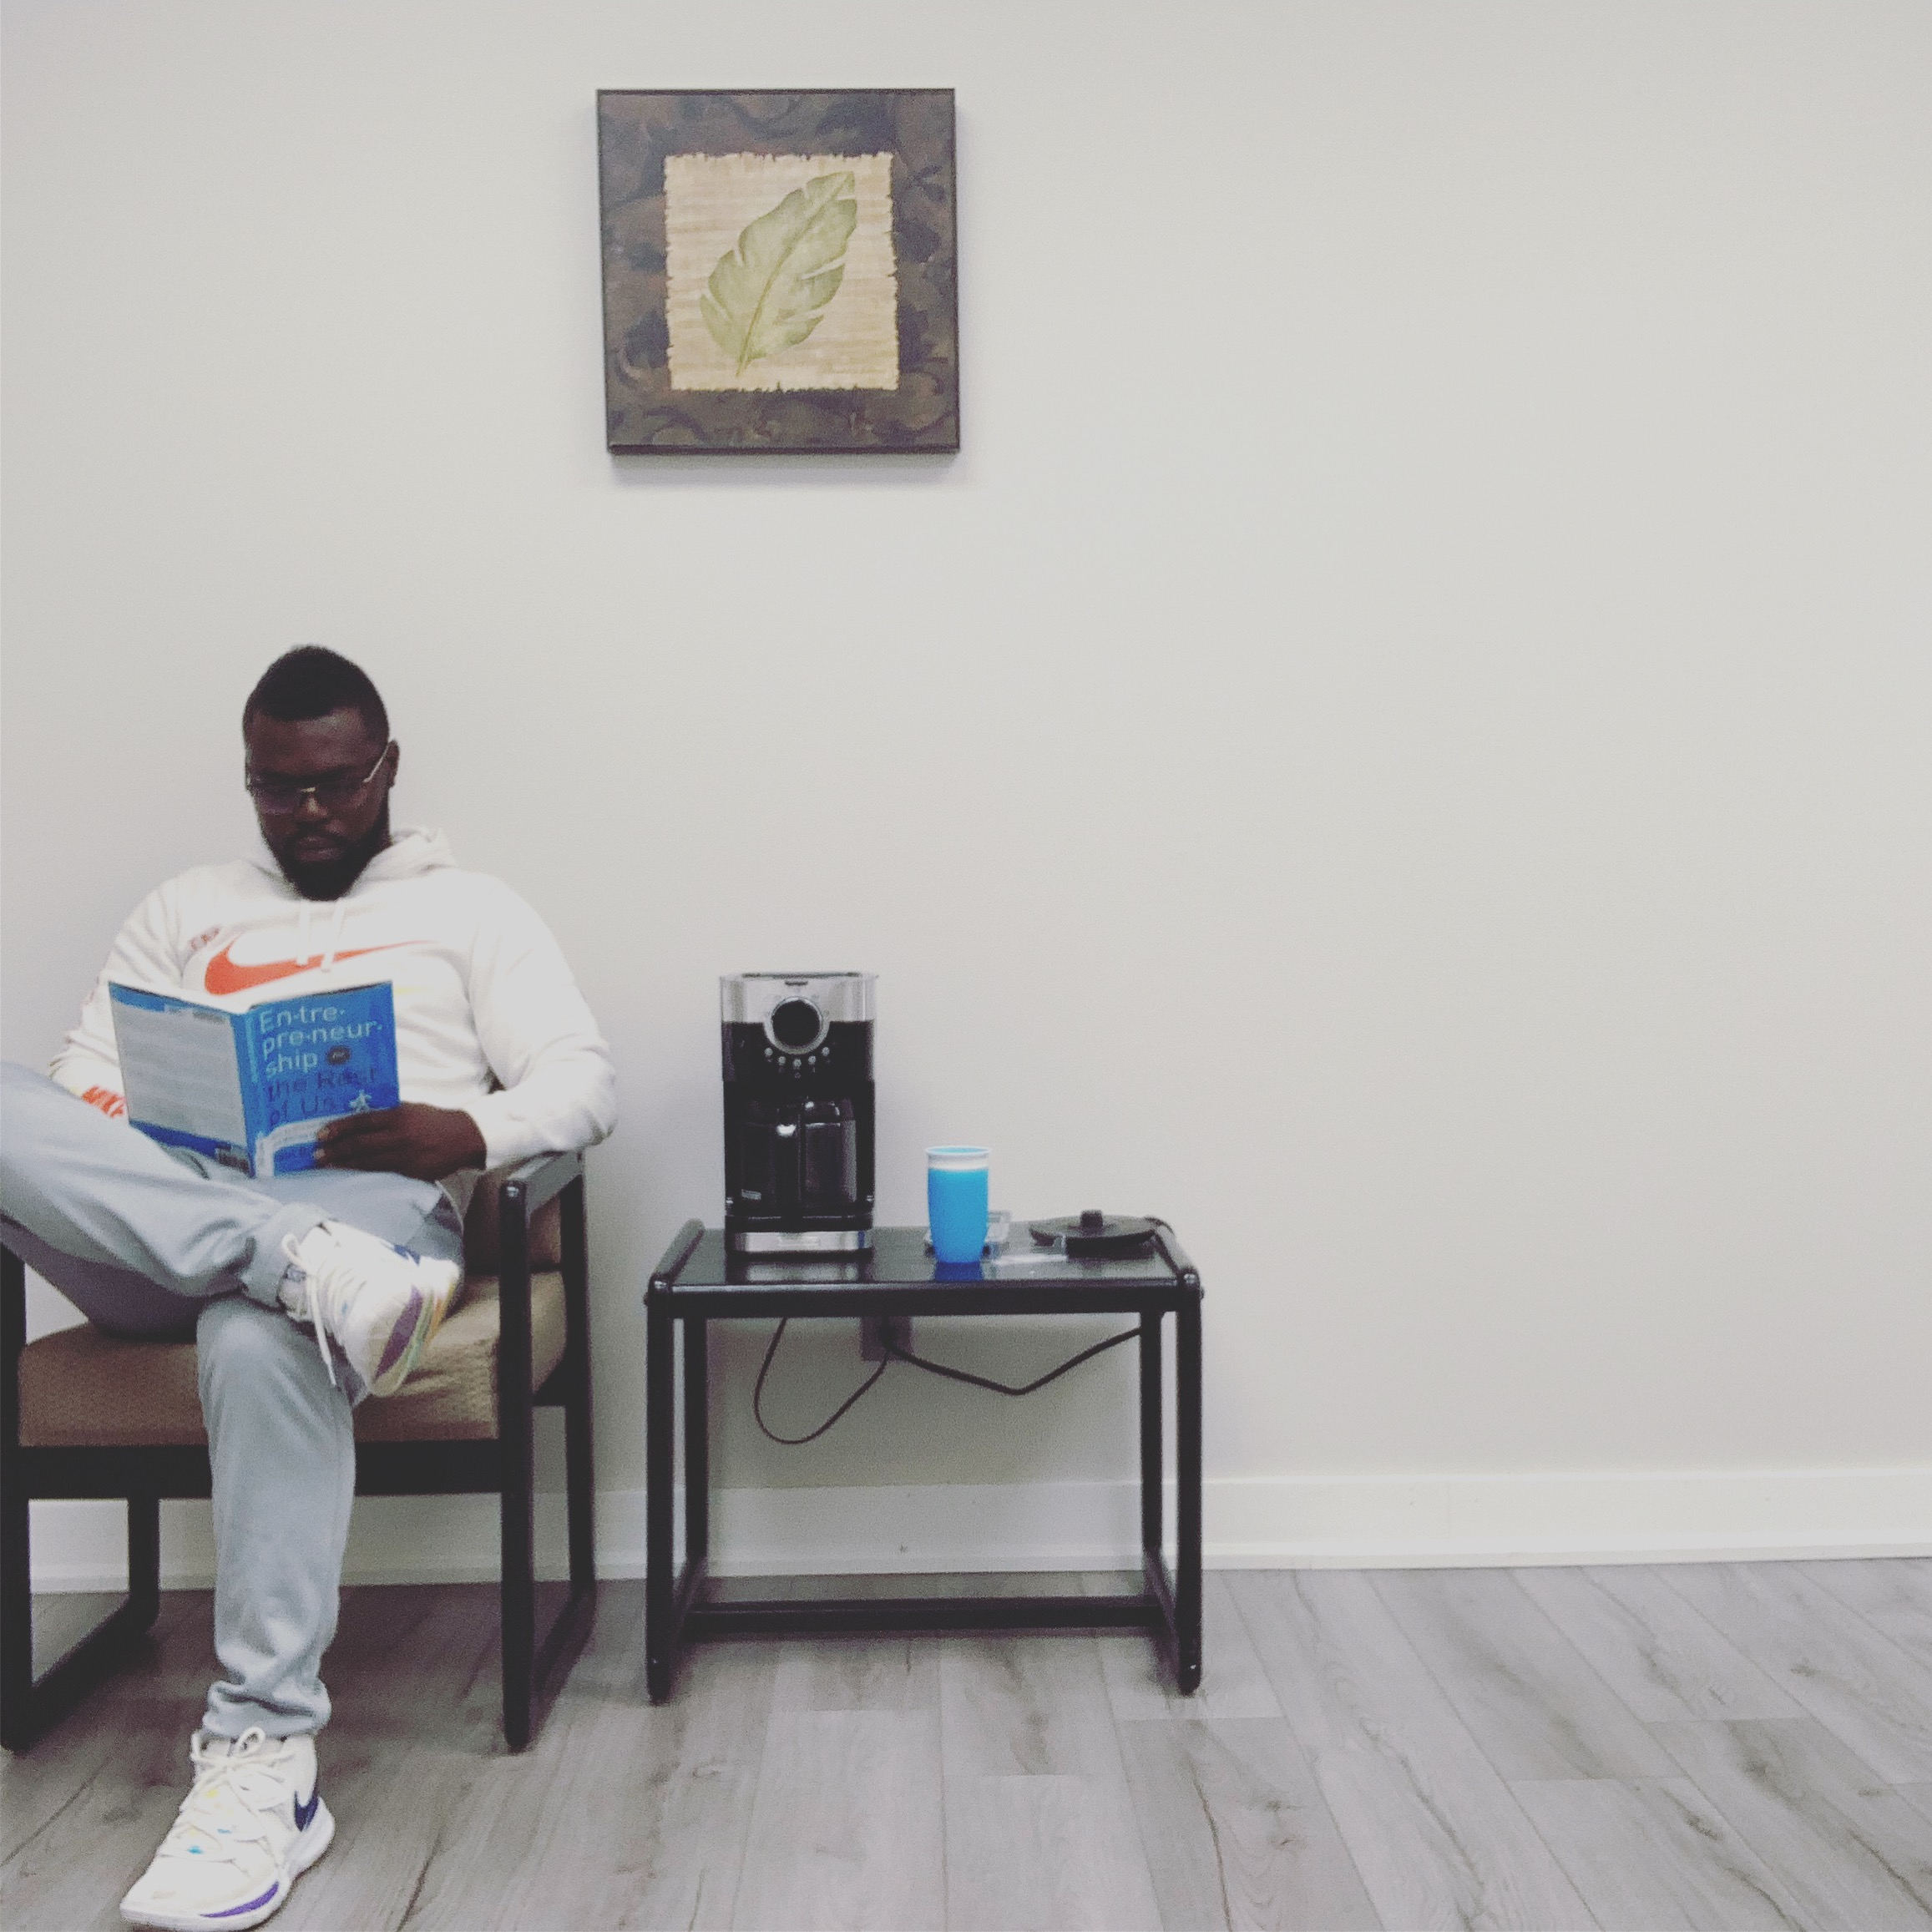 a picture of Emmanuel Appiah reading a book about entrepreneurship